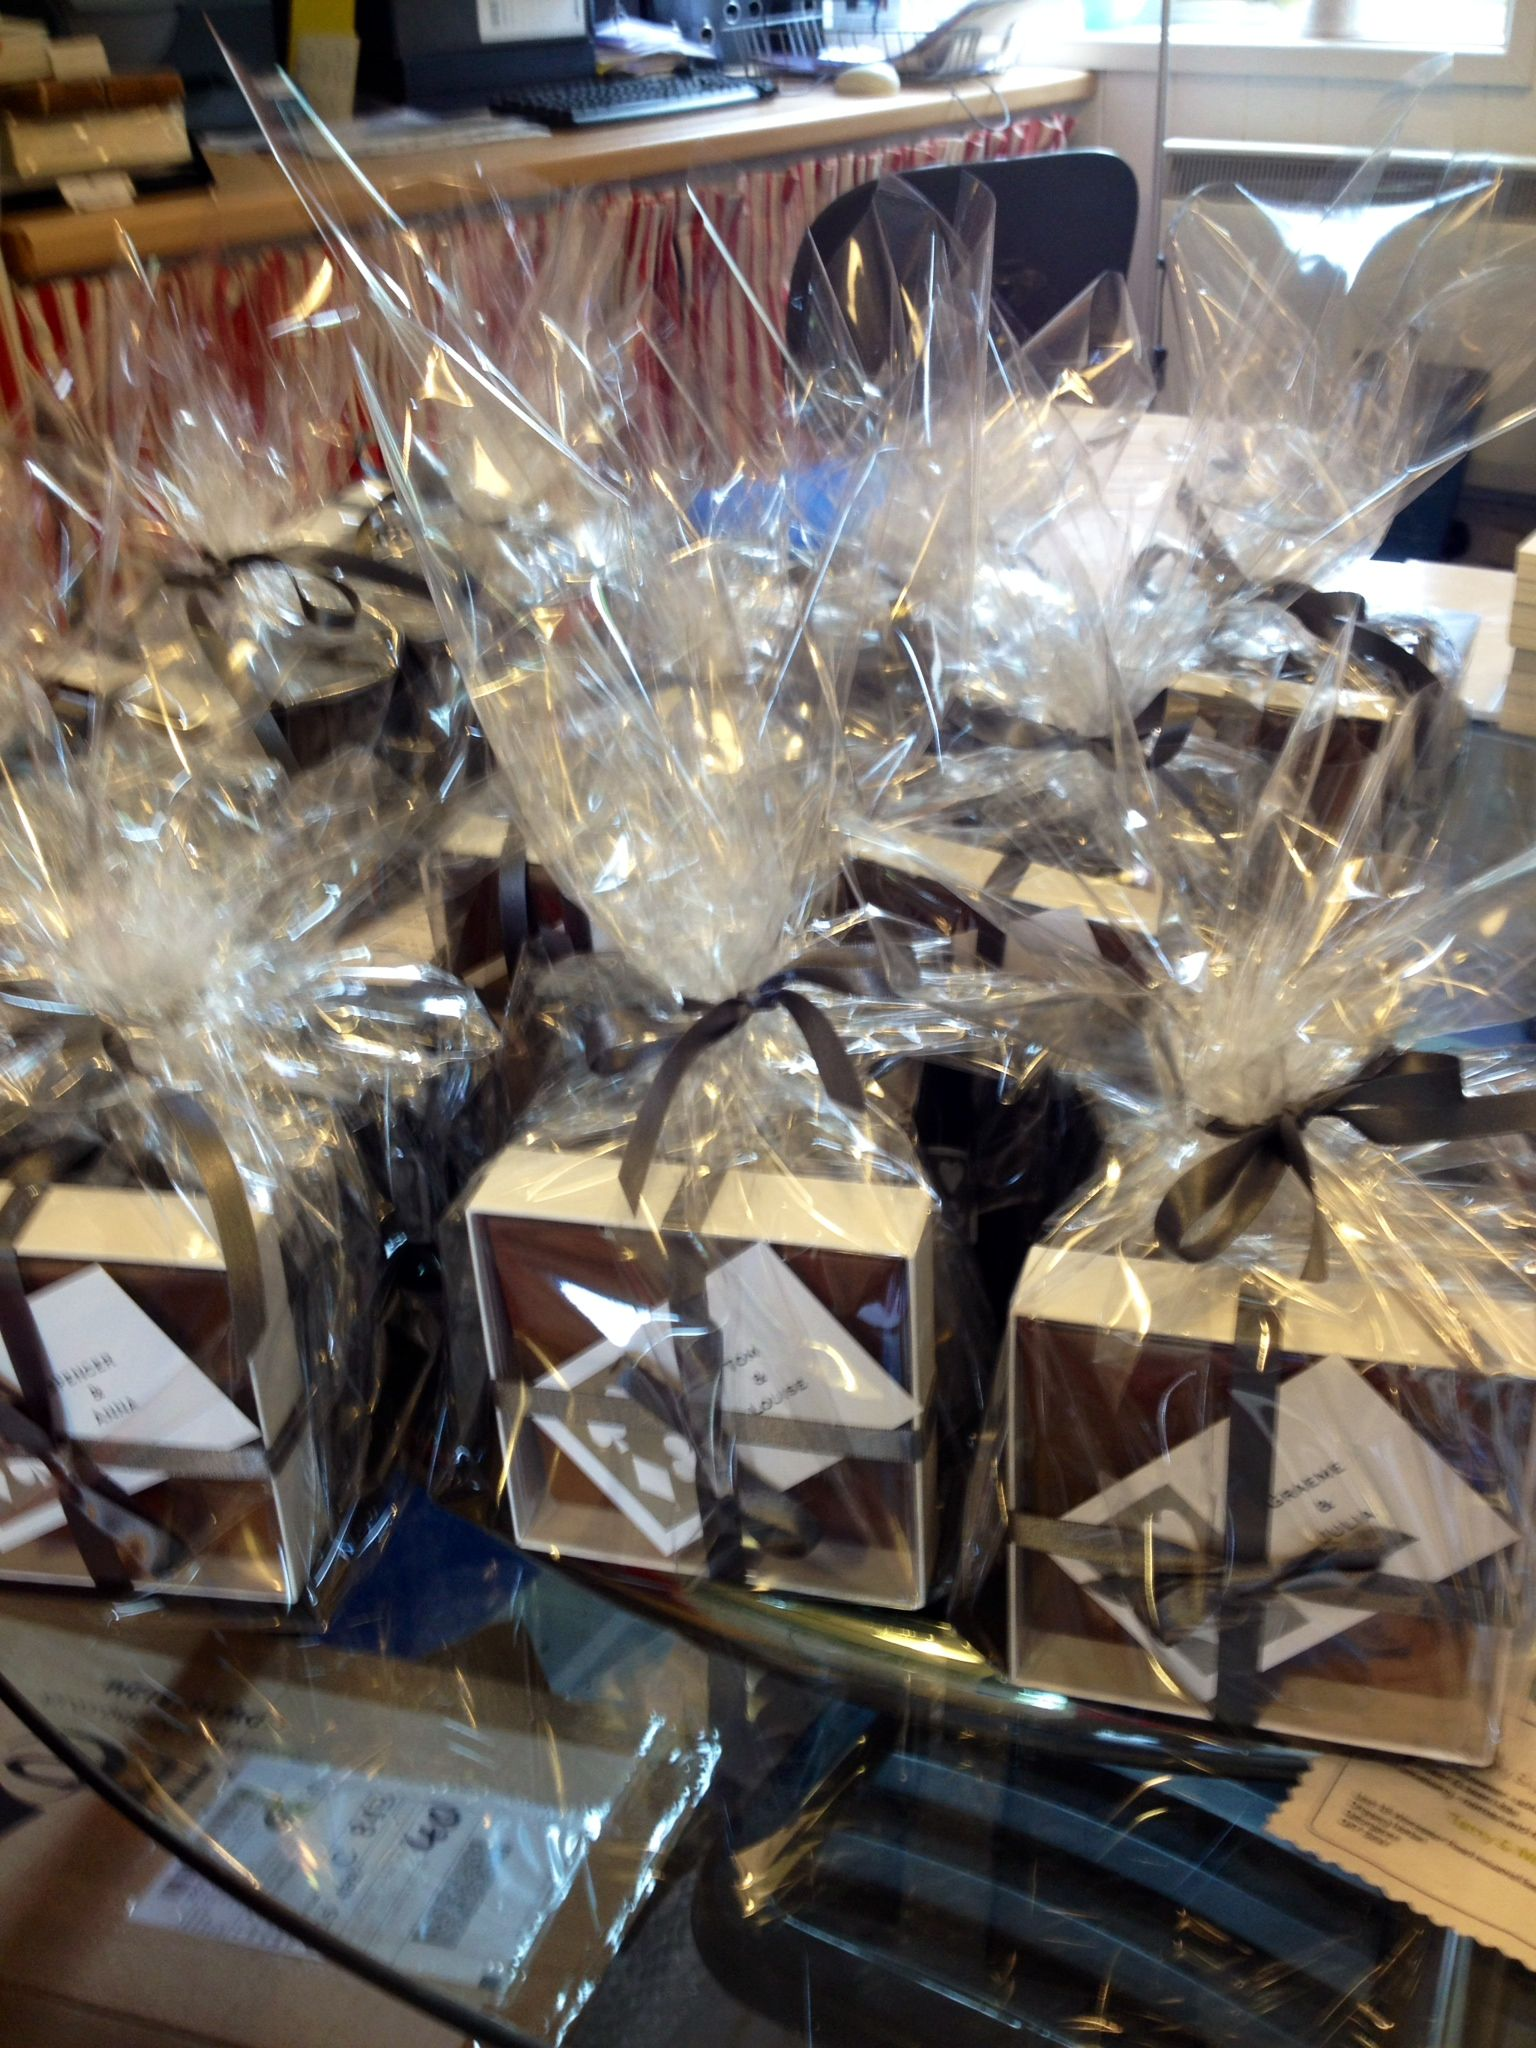 We did wonderful goodie bags for a birthday poker night with cards, chocolate and candles.